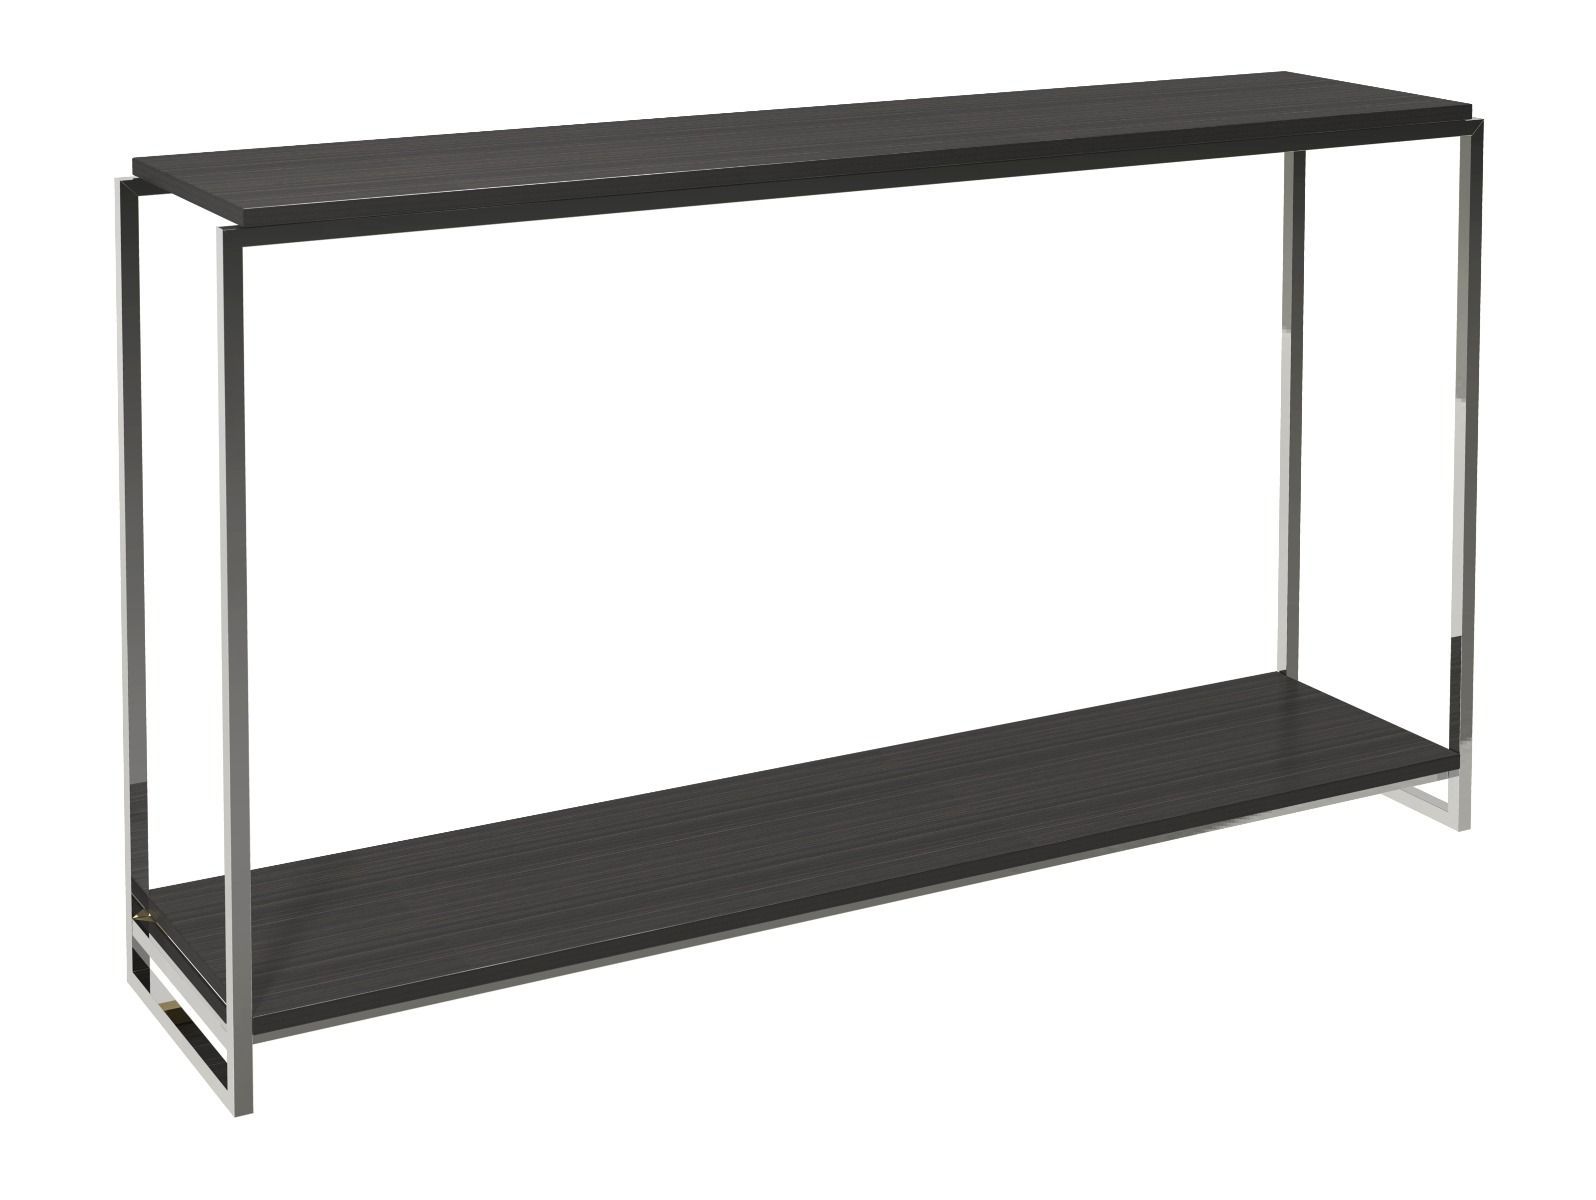 How To Make Narrow Console Table Also Where To Buy Narrow Console Throughout Echelon Console Tables (View 20 of 30)